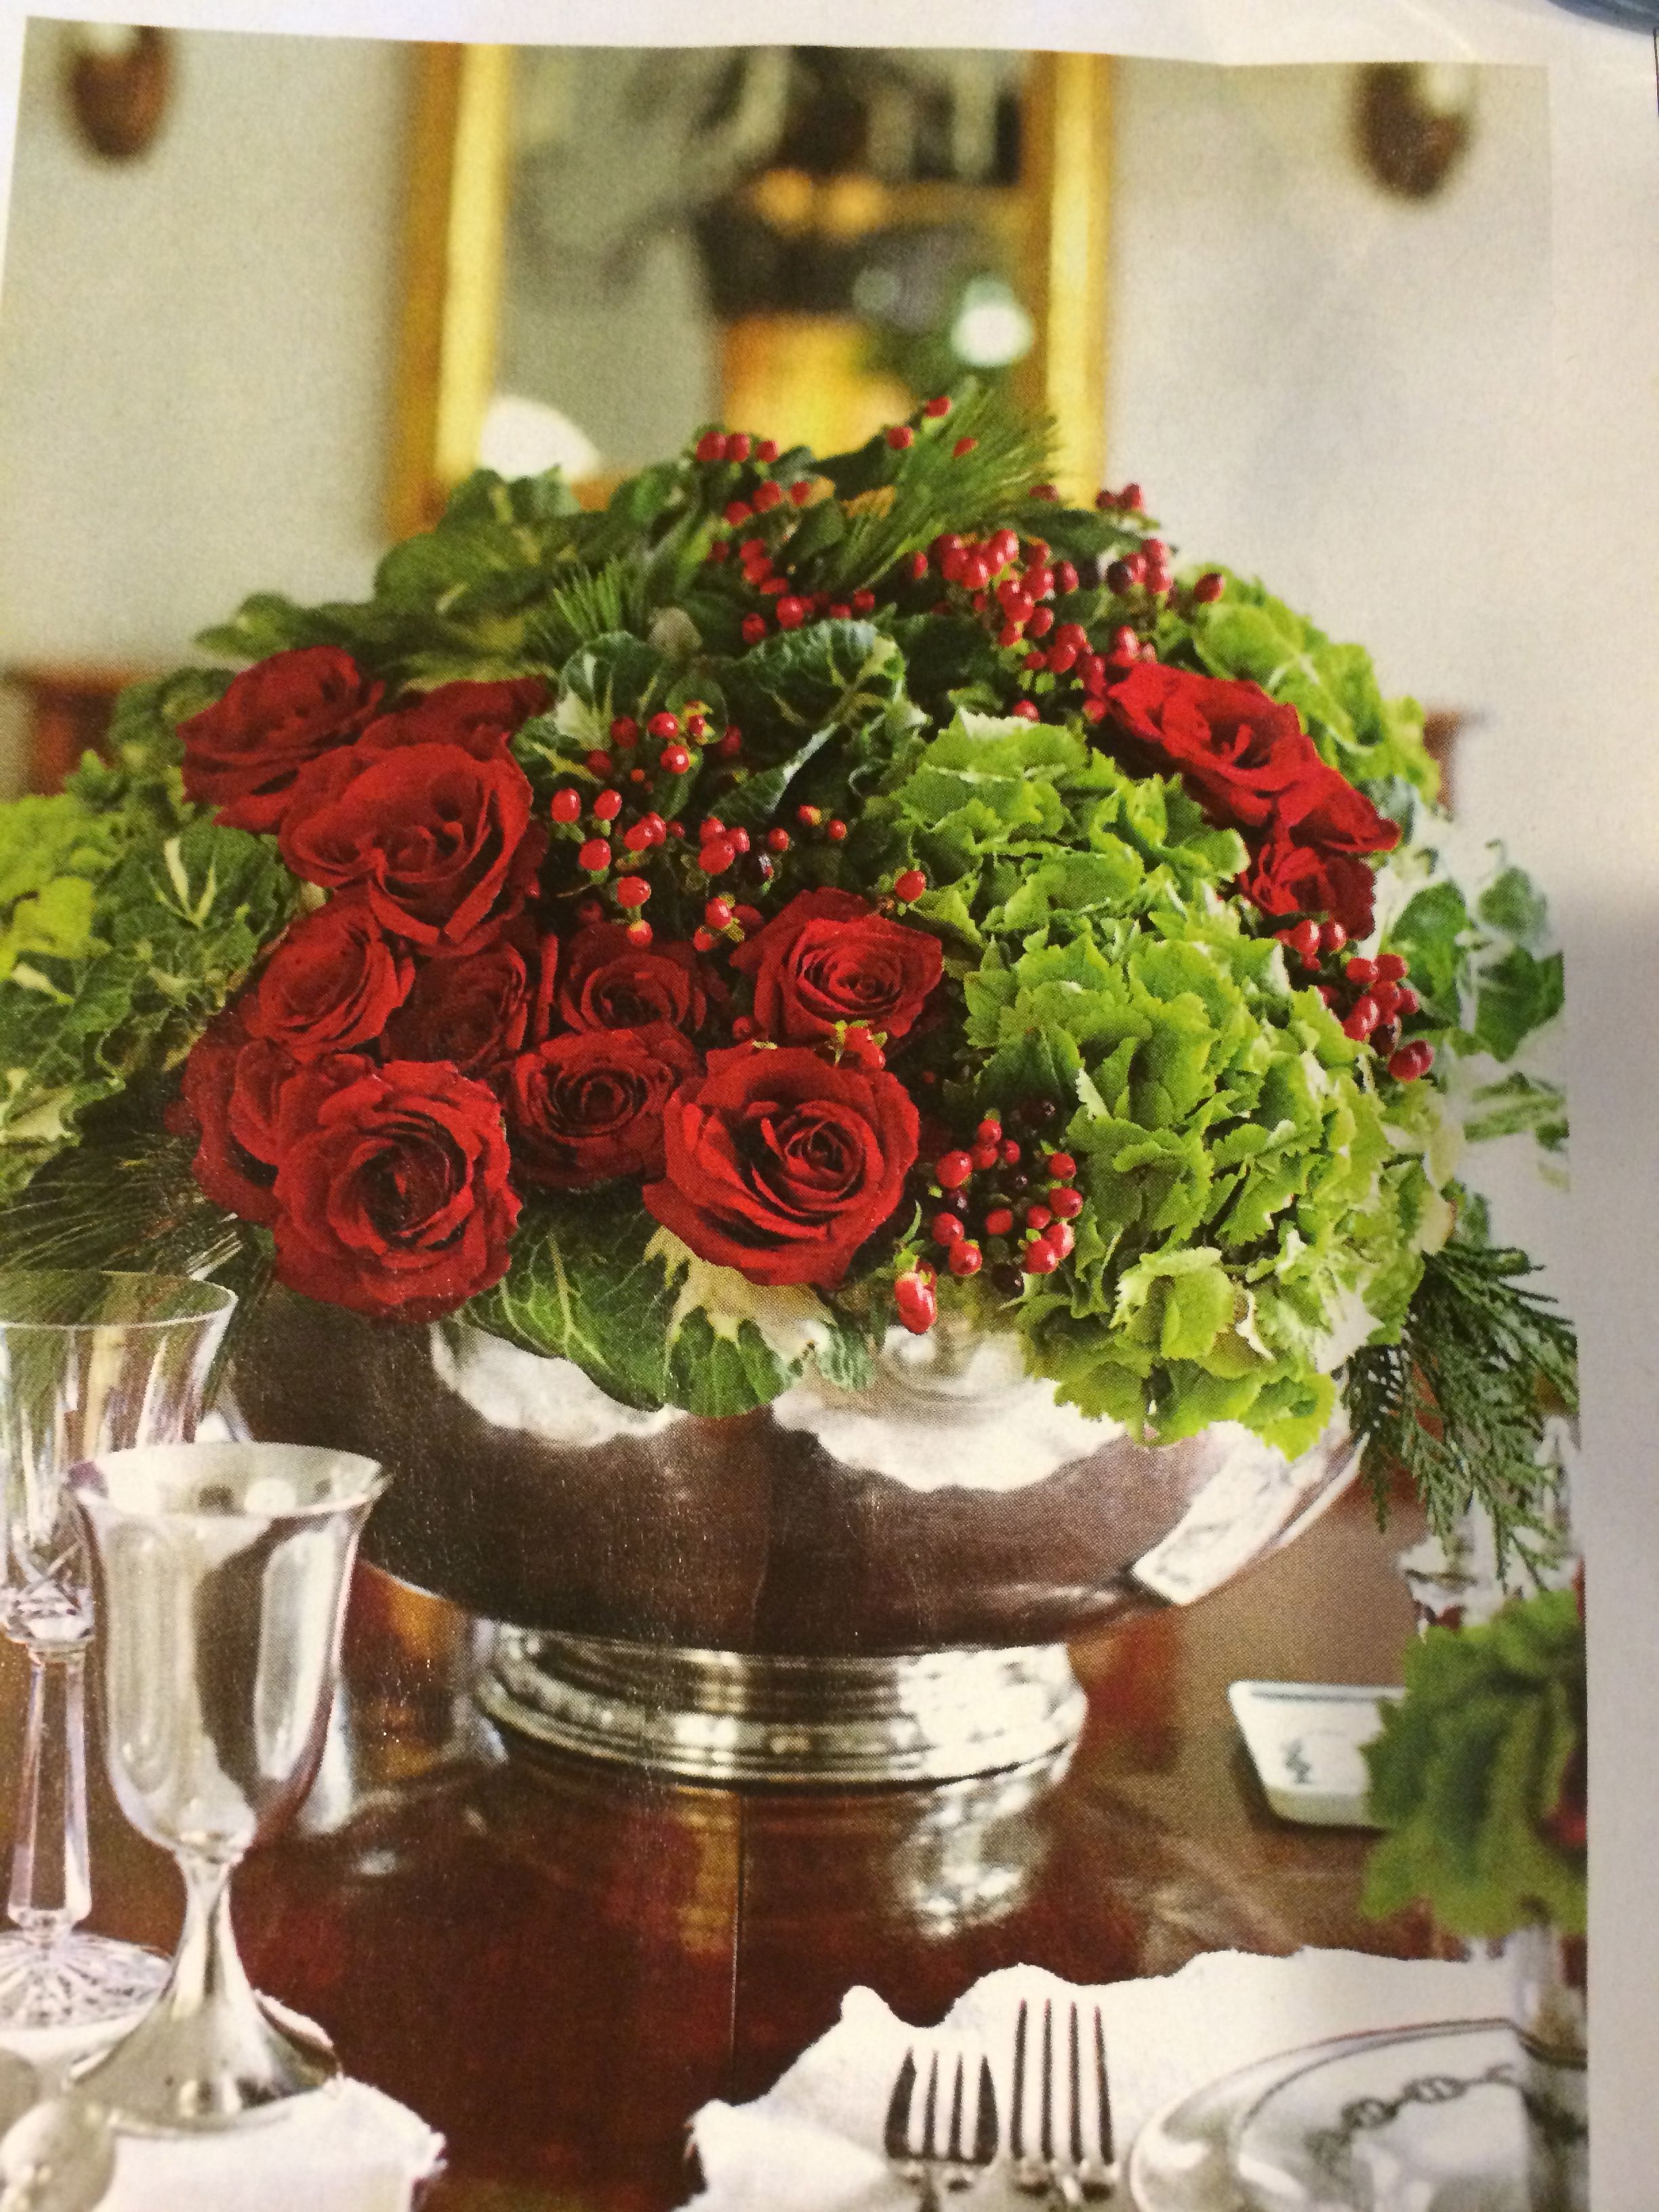 How To Arrange In A Low Silver Bowl Christmas Centerpieces Christmas Decorations Christmas Flower Arrangements